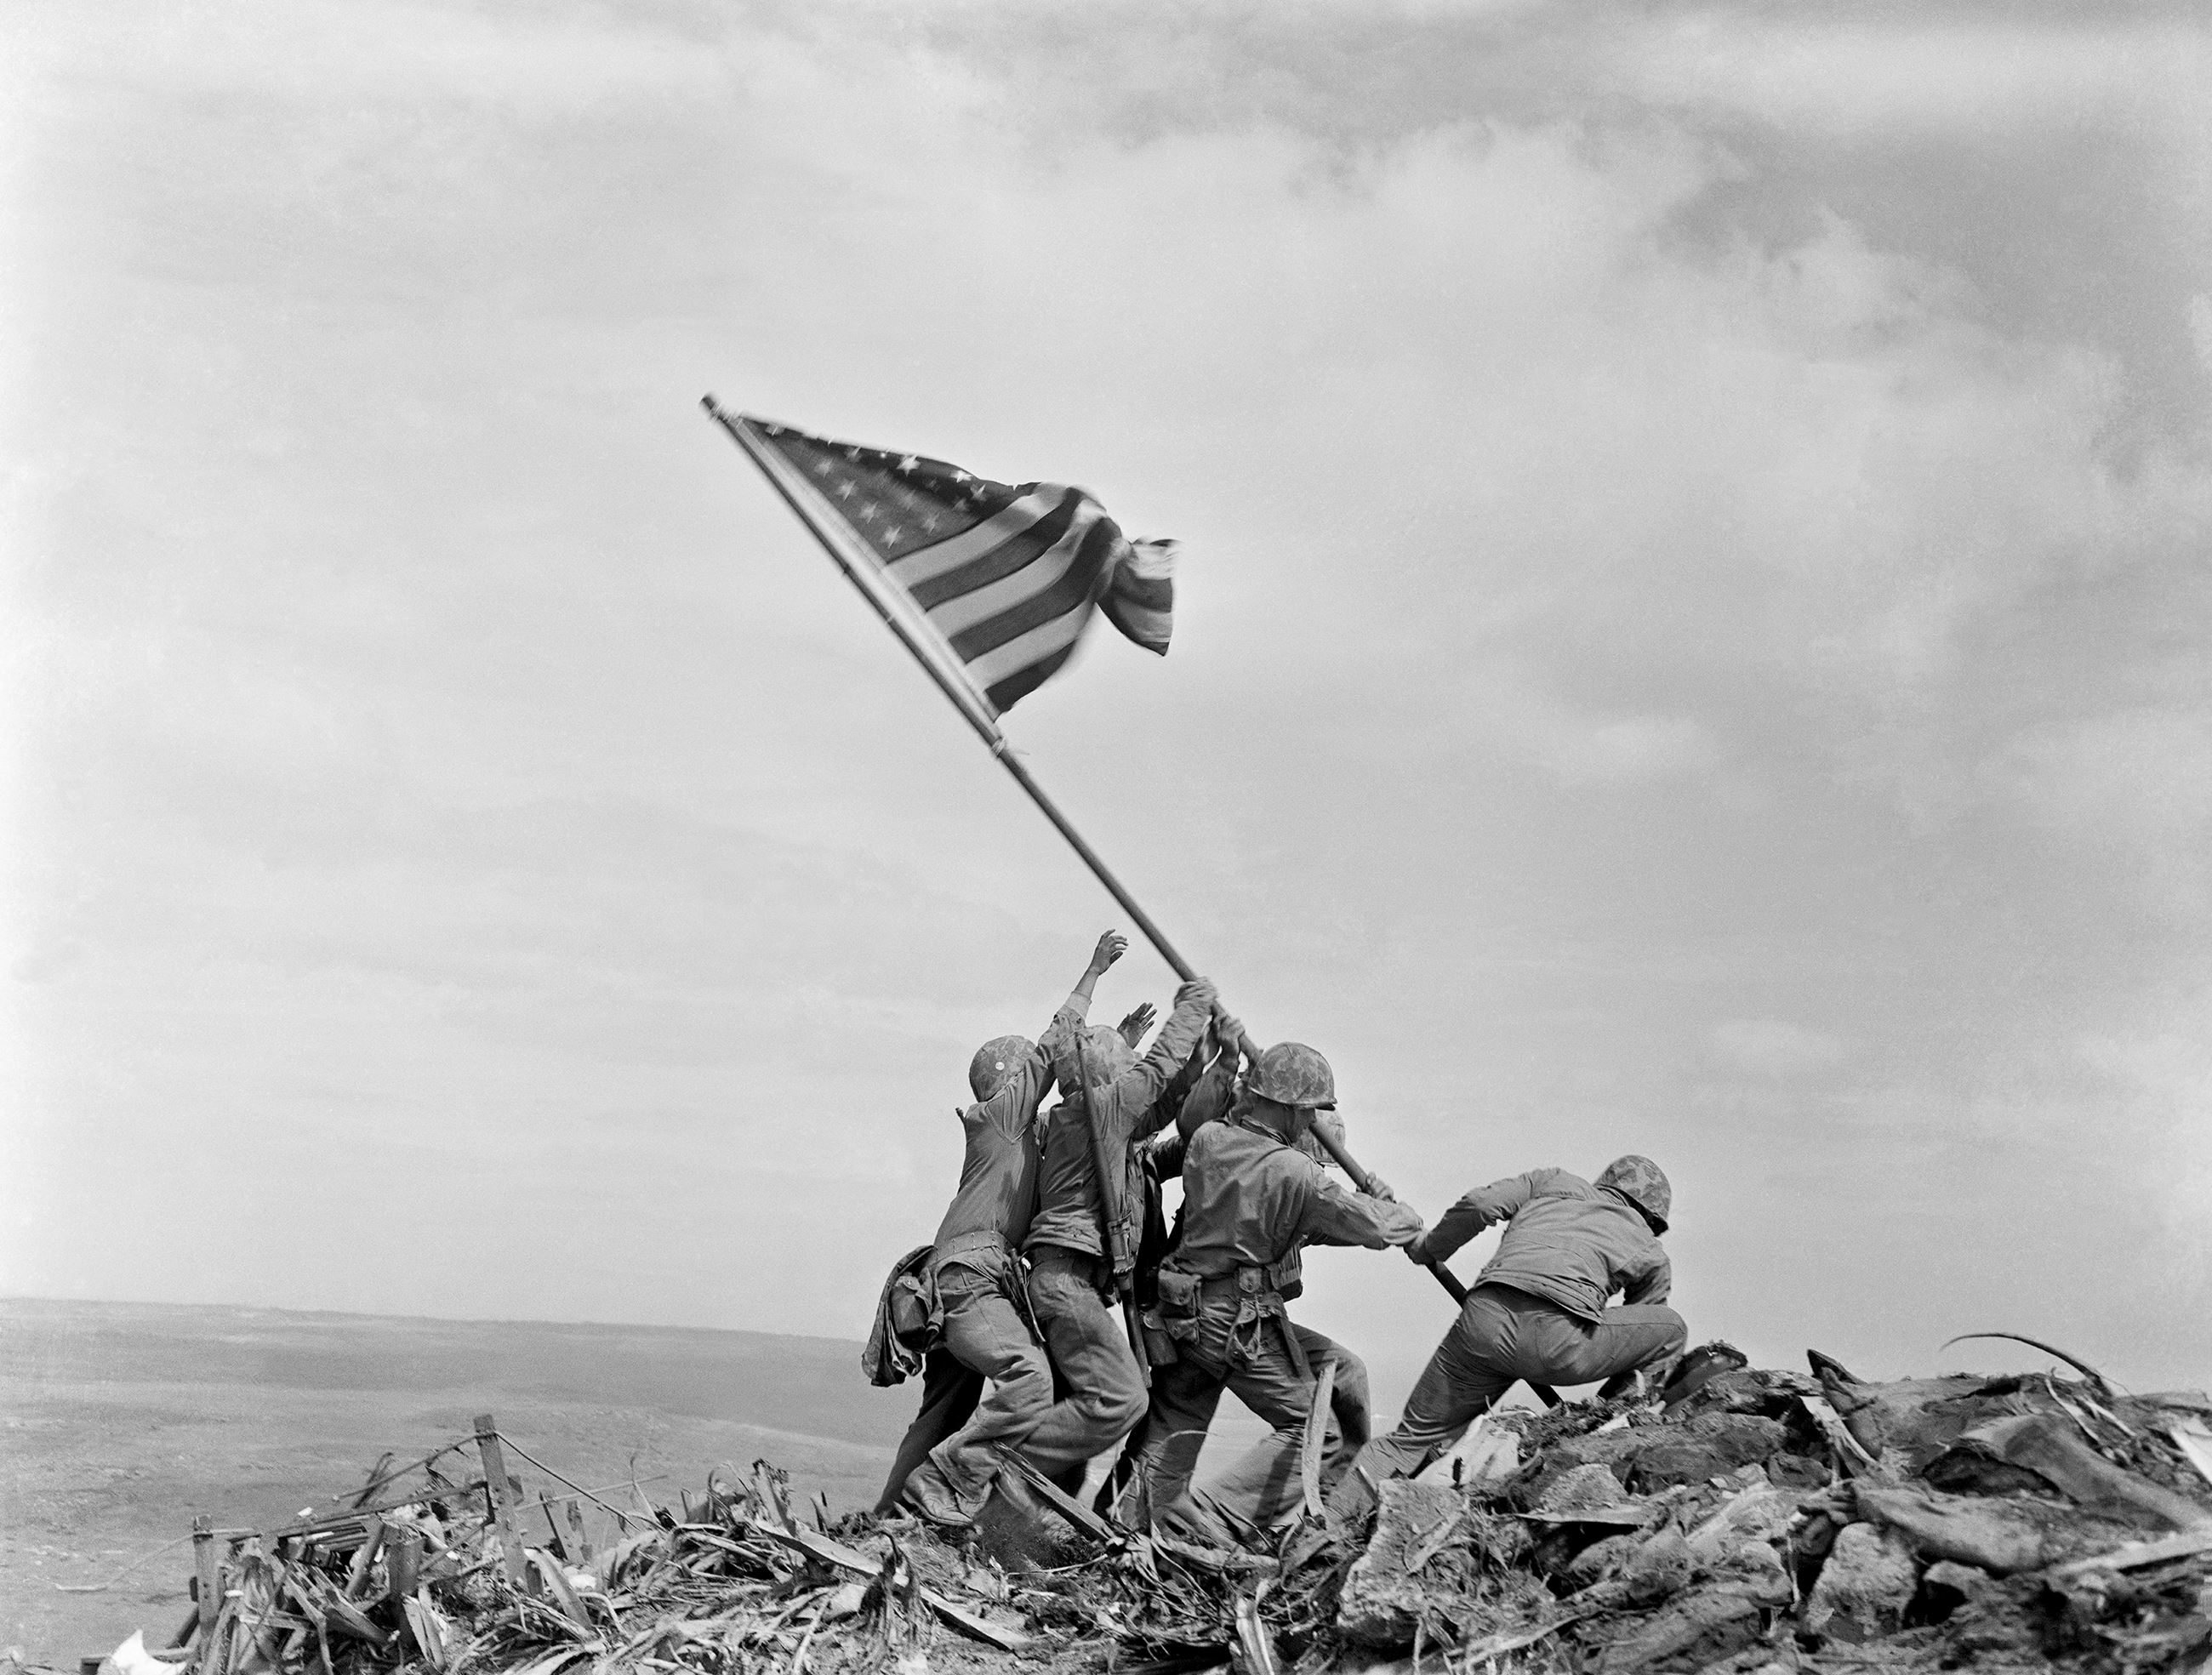 Raising the second flag on Mount Suribachi, Iwo Jima, by Joe Rosenthal, Associated Press photo